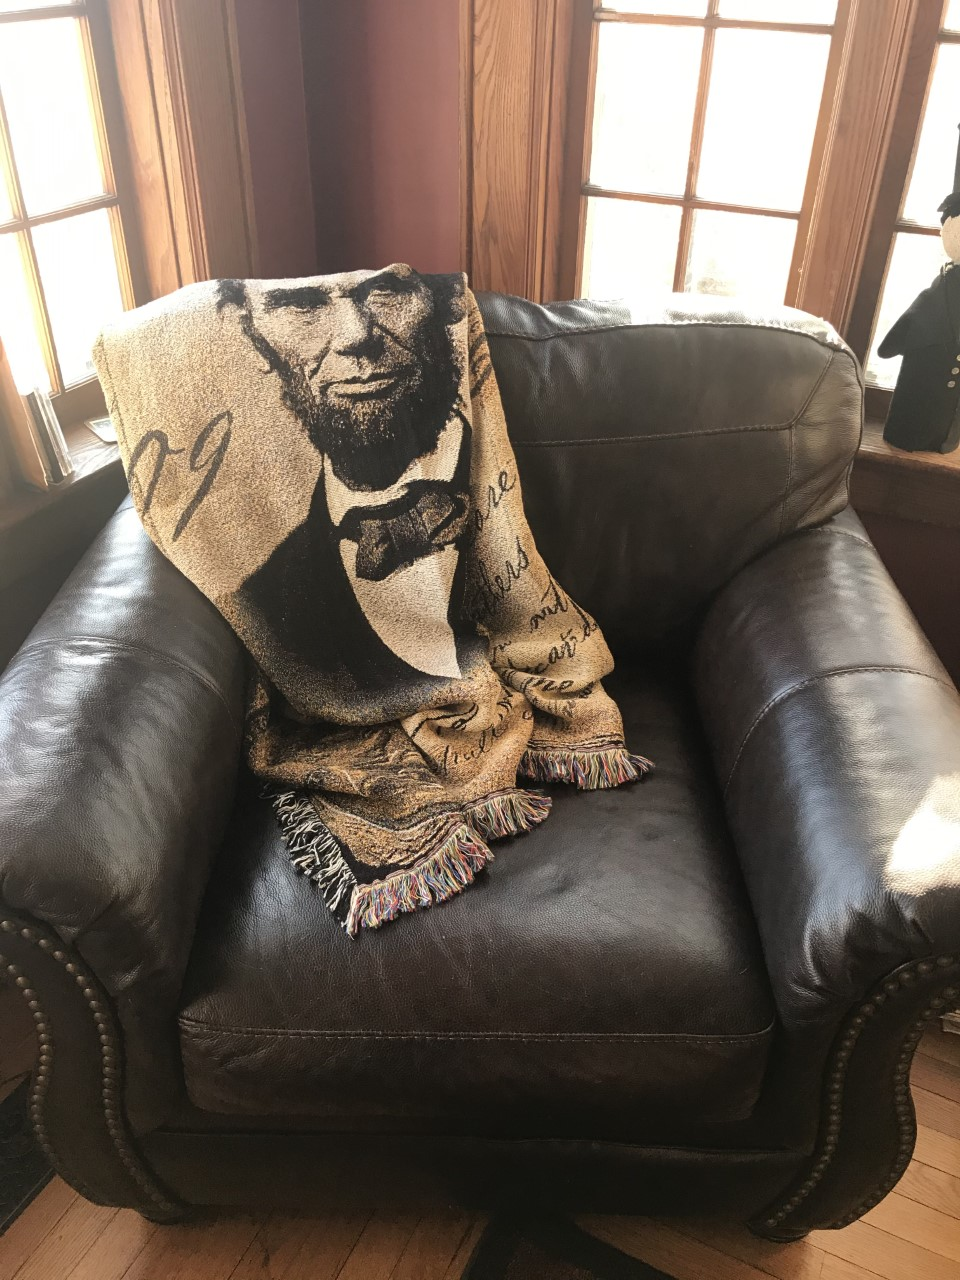 russ-abraham-lincoln-throw-blanket-photo.jpg